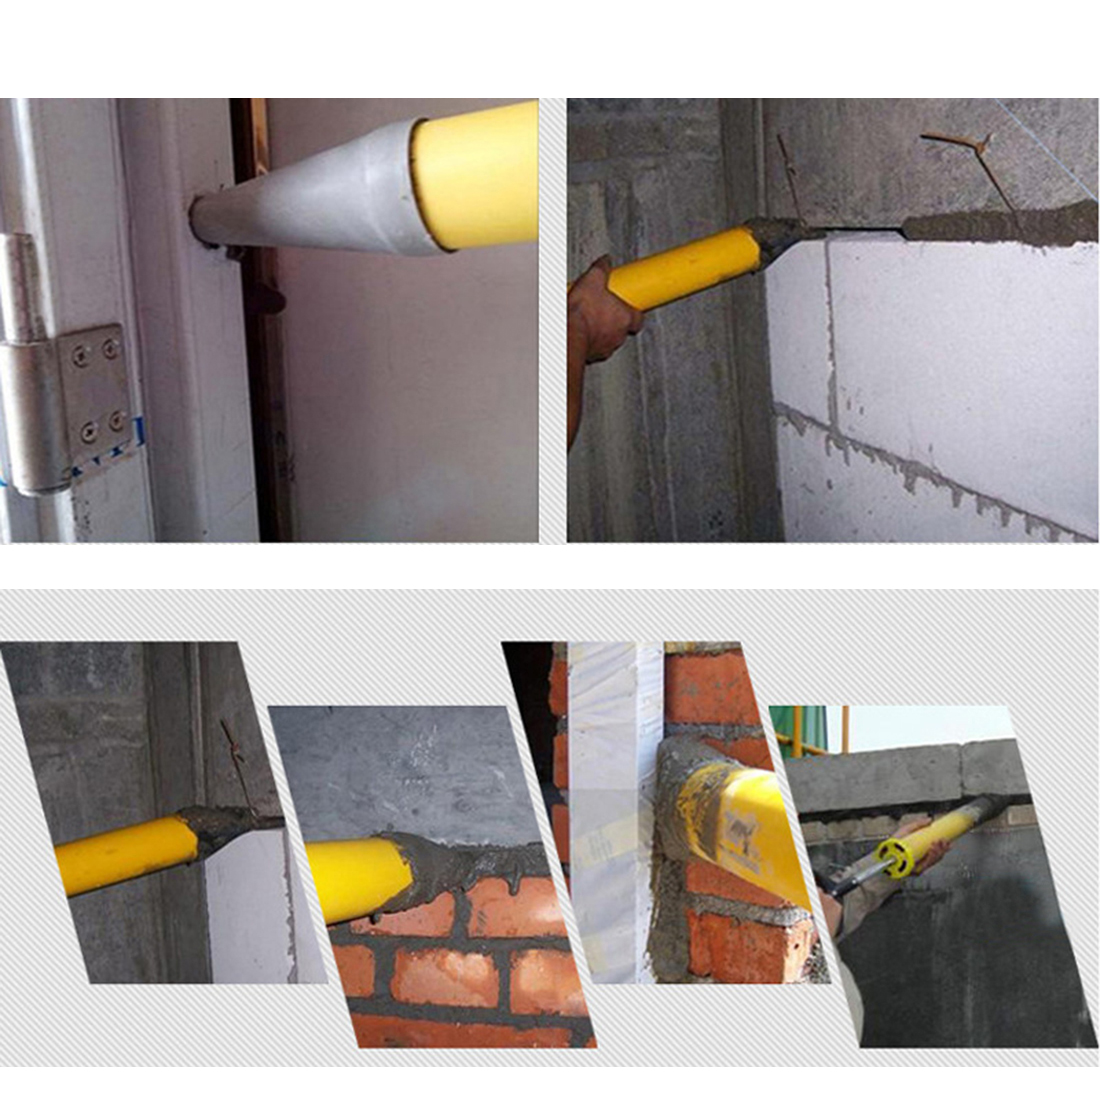 Caulking Gun Mayitr Pointing Brick Grouting Mortar Sprayer Applicator Tool For Cement Lime Wall Window Filling Tool Y30